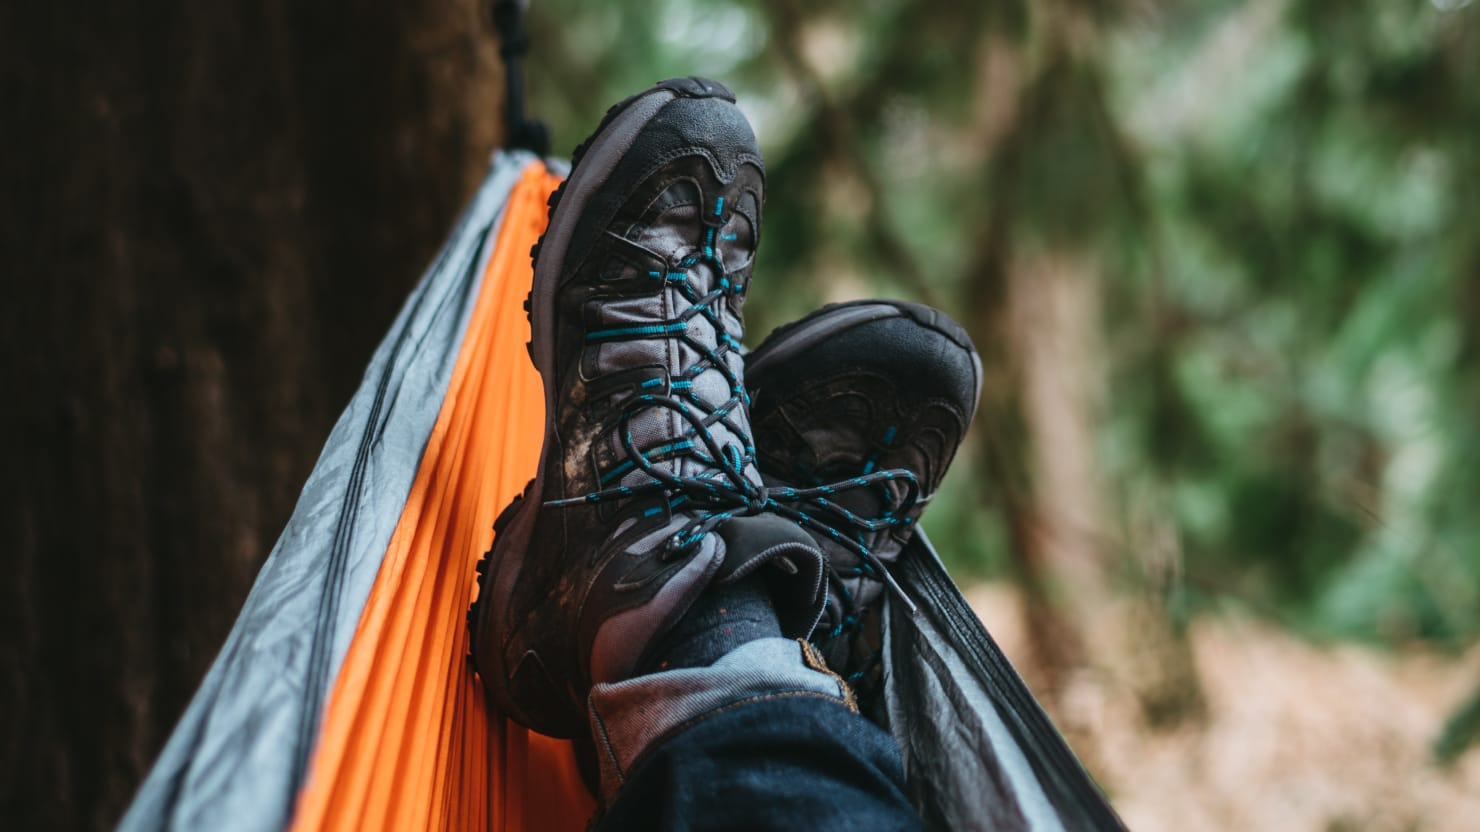 Scouted: The Most Durable Hiking Boots To Wear While Summiting Peaks (or Along Your Neighborhood Trails)